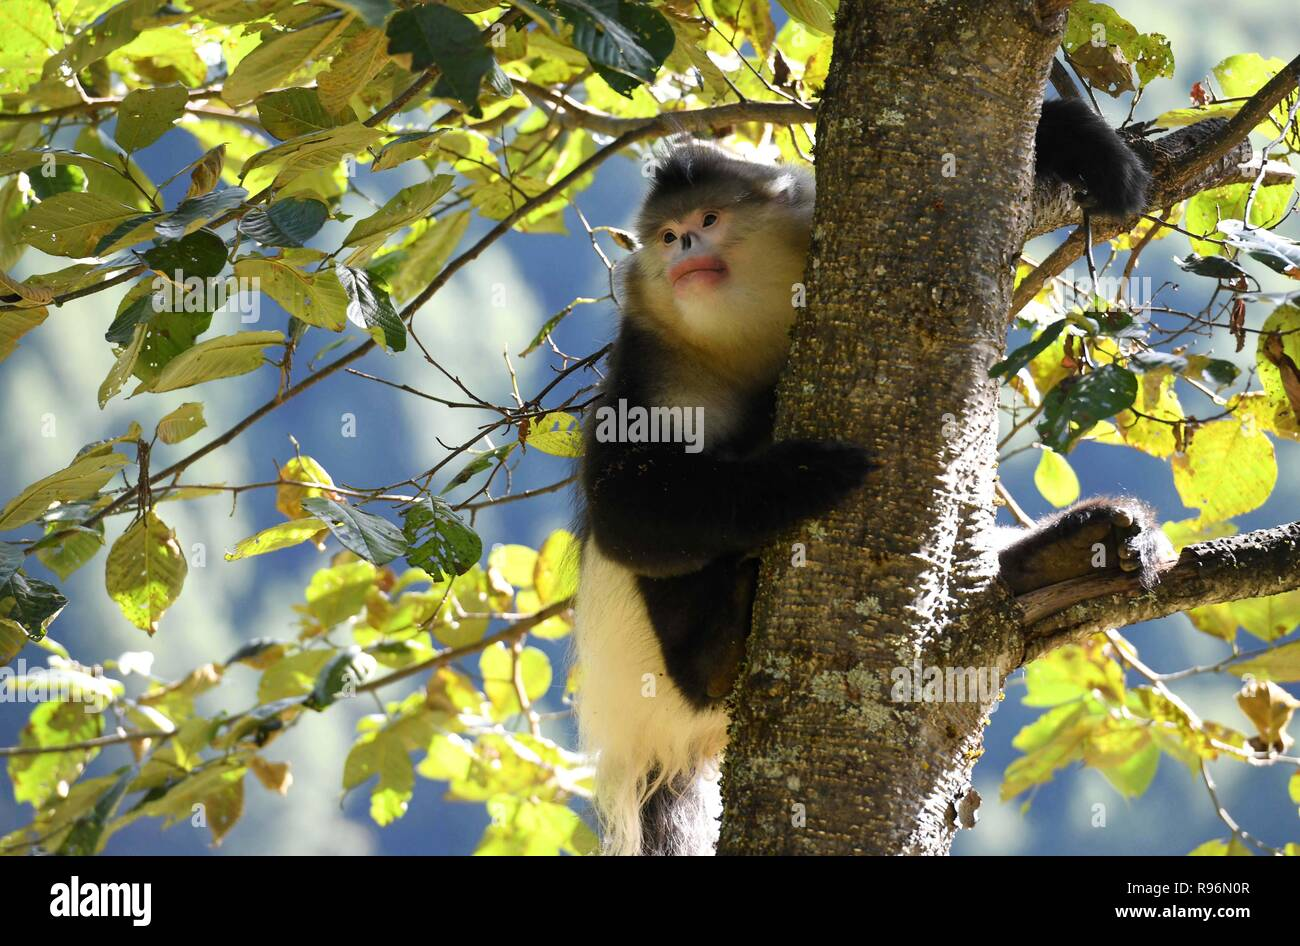 (181220) -- BEIJING, Dec. 20, 2018 (Xinhua) -- Photo taken on Nov. 3, 2017 shows a black snub-nosed monkey, also known as the Yunnan golden monkey, climbing a tree in the Yunnan golden monkey national park in Tibetan Autonomous Prefecture of Deqen, southwest China's Yunnan Province. China's National Forestry and Grassland Administration (NFGA) inked a deal with tech giant Tencent on Dec. 19, 2018 to jointly crack down on illegal wildlife trade online. This is the latest example of the regulator's efforts to fight against increasingly rampant online wildlife crimes committed on social m - Stock Image